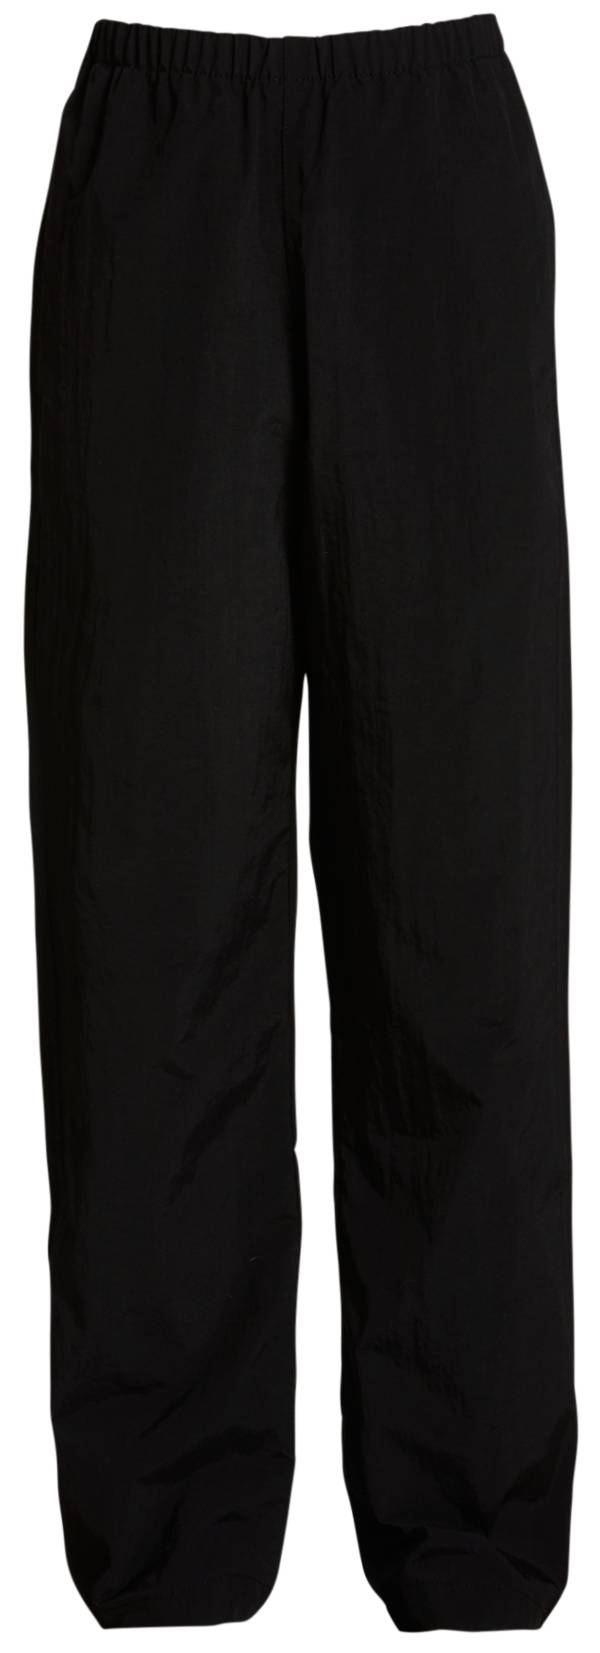 DSG Youth Wateproof Rain Pants product image